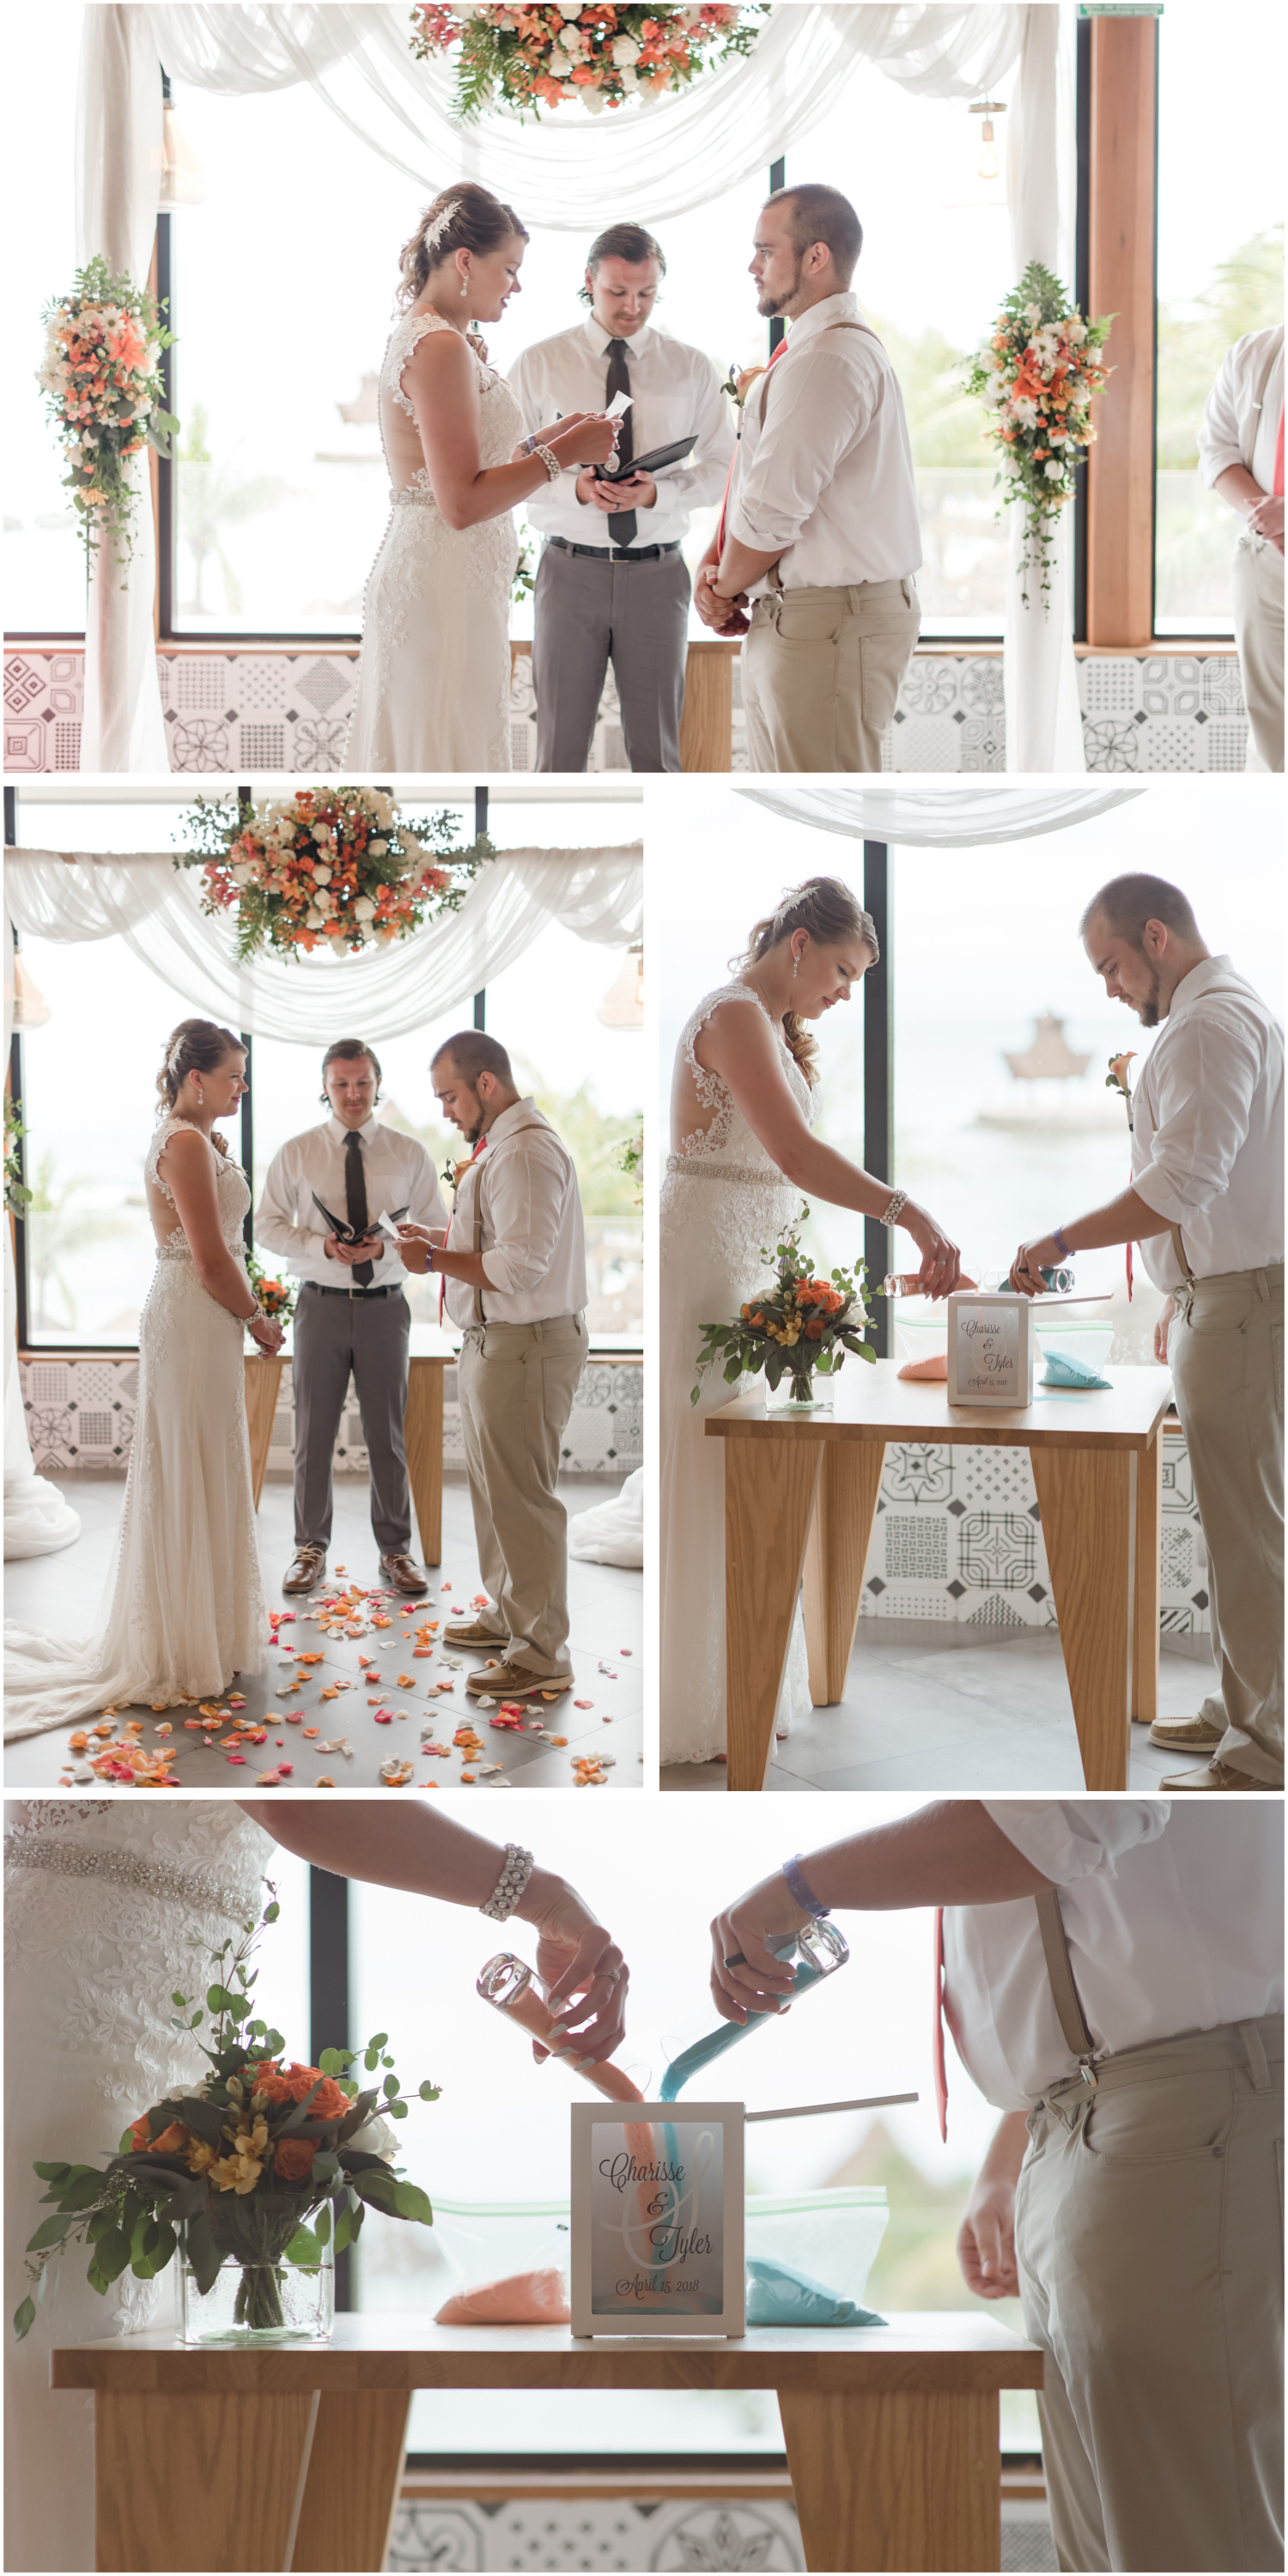 sand ceremony at a destination wedding